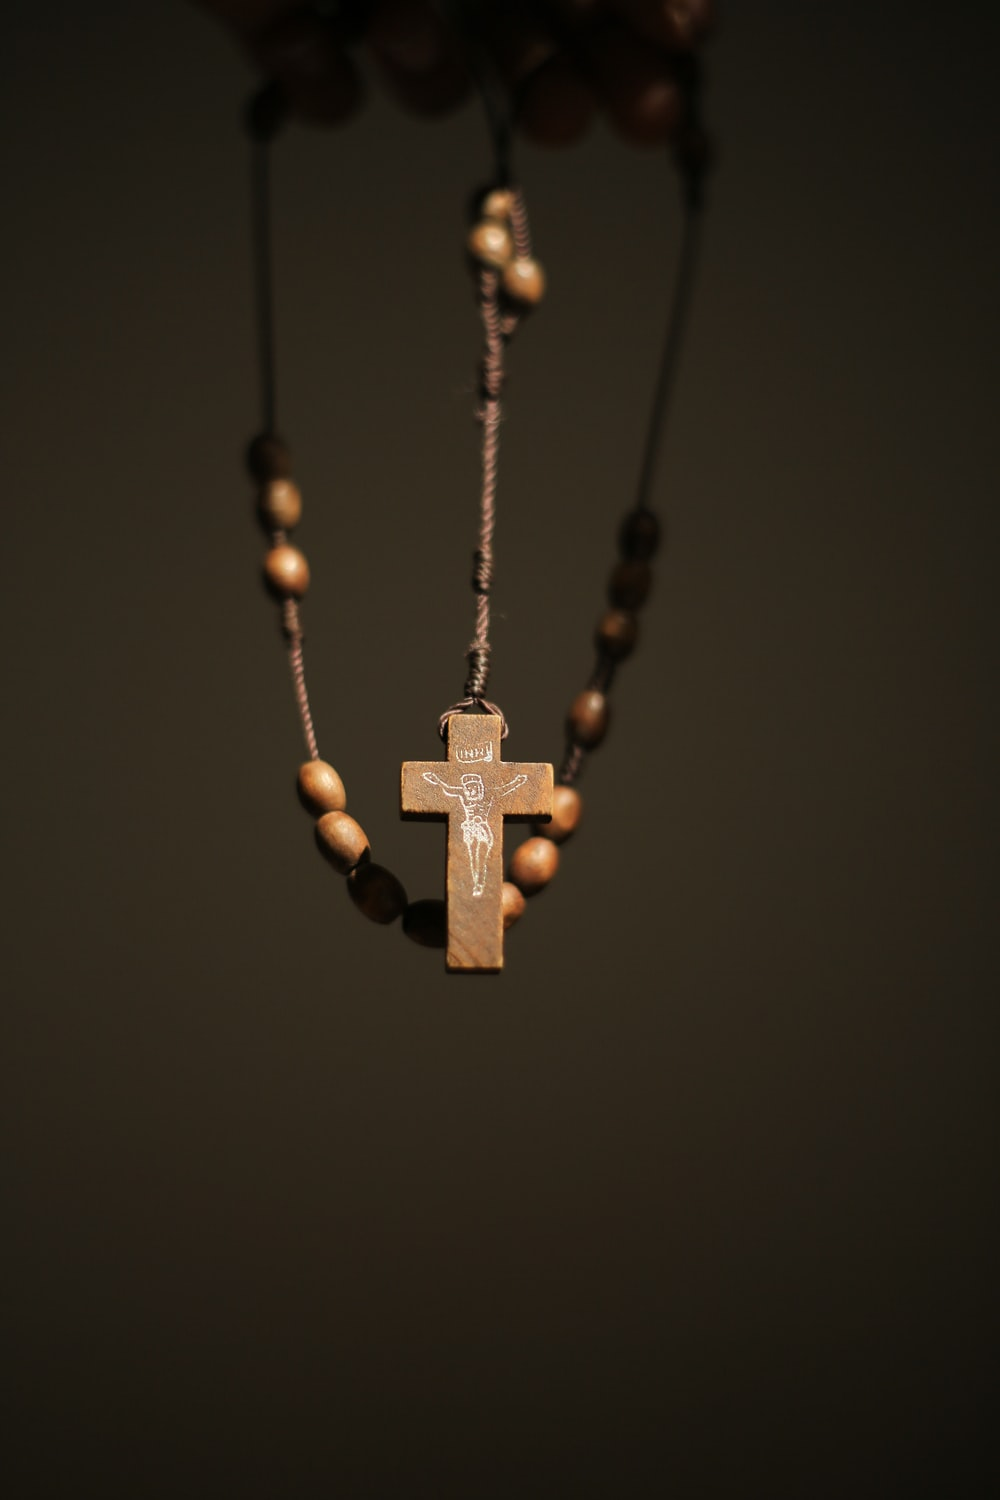 gold cross pendant necklace on black background